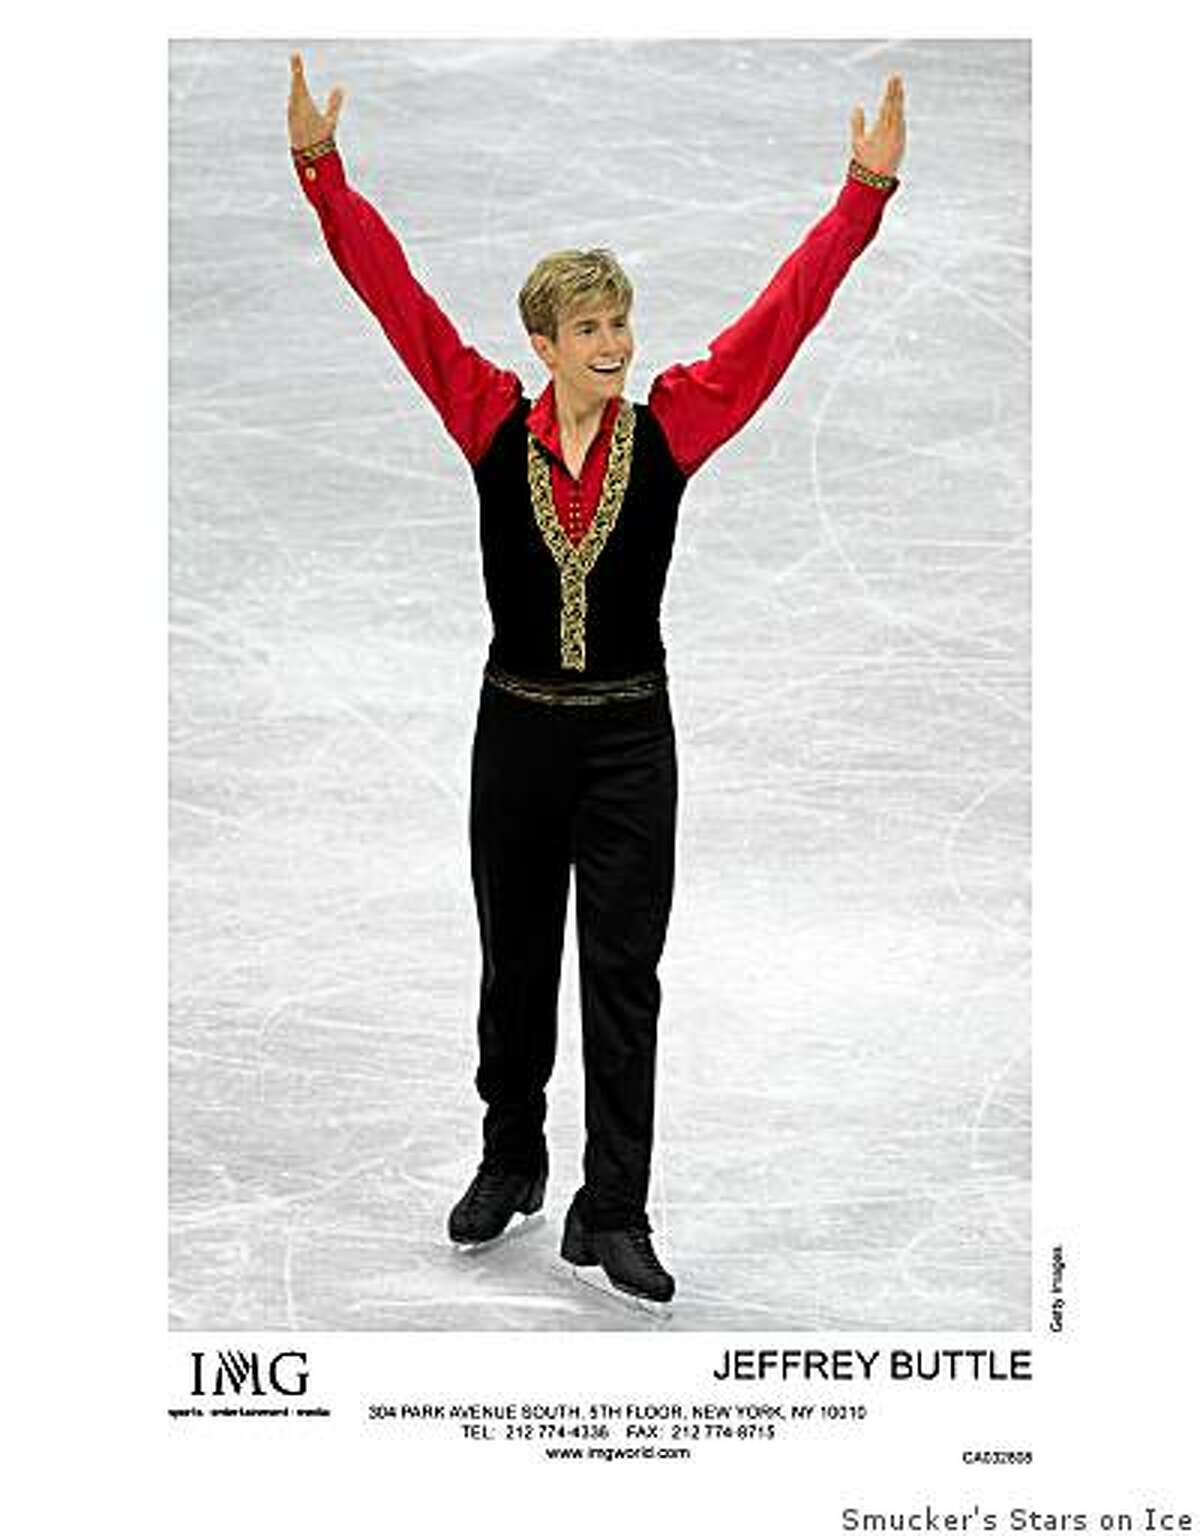 """Jeffrey Buttle will perform in """"On the Edge,"""" the Smucker's Stars on Ice show, at 7:30 p.m. Jan. 30 at HP Pavilion in San Jose. (2009)"""